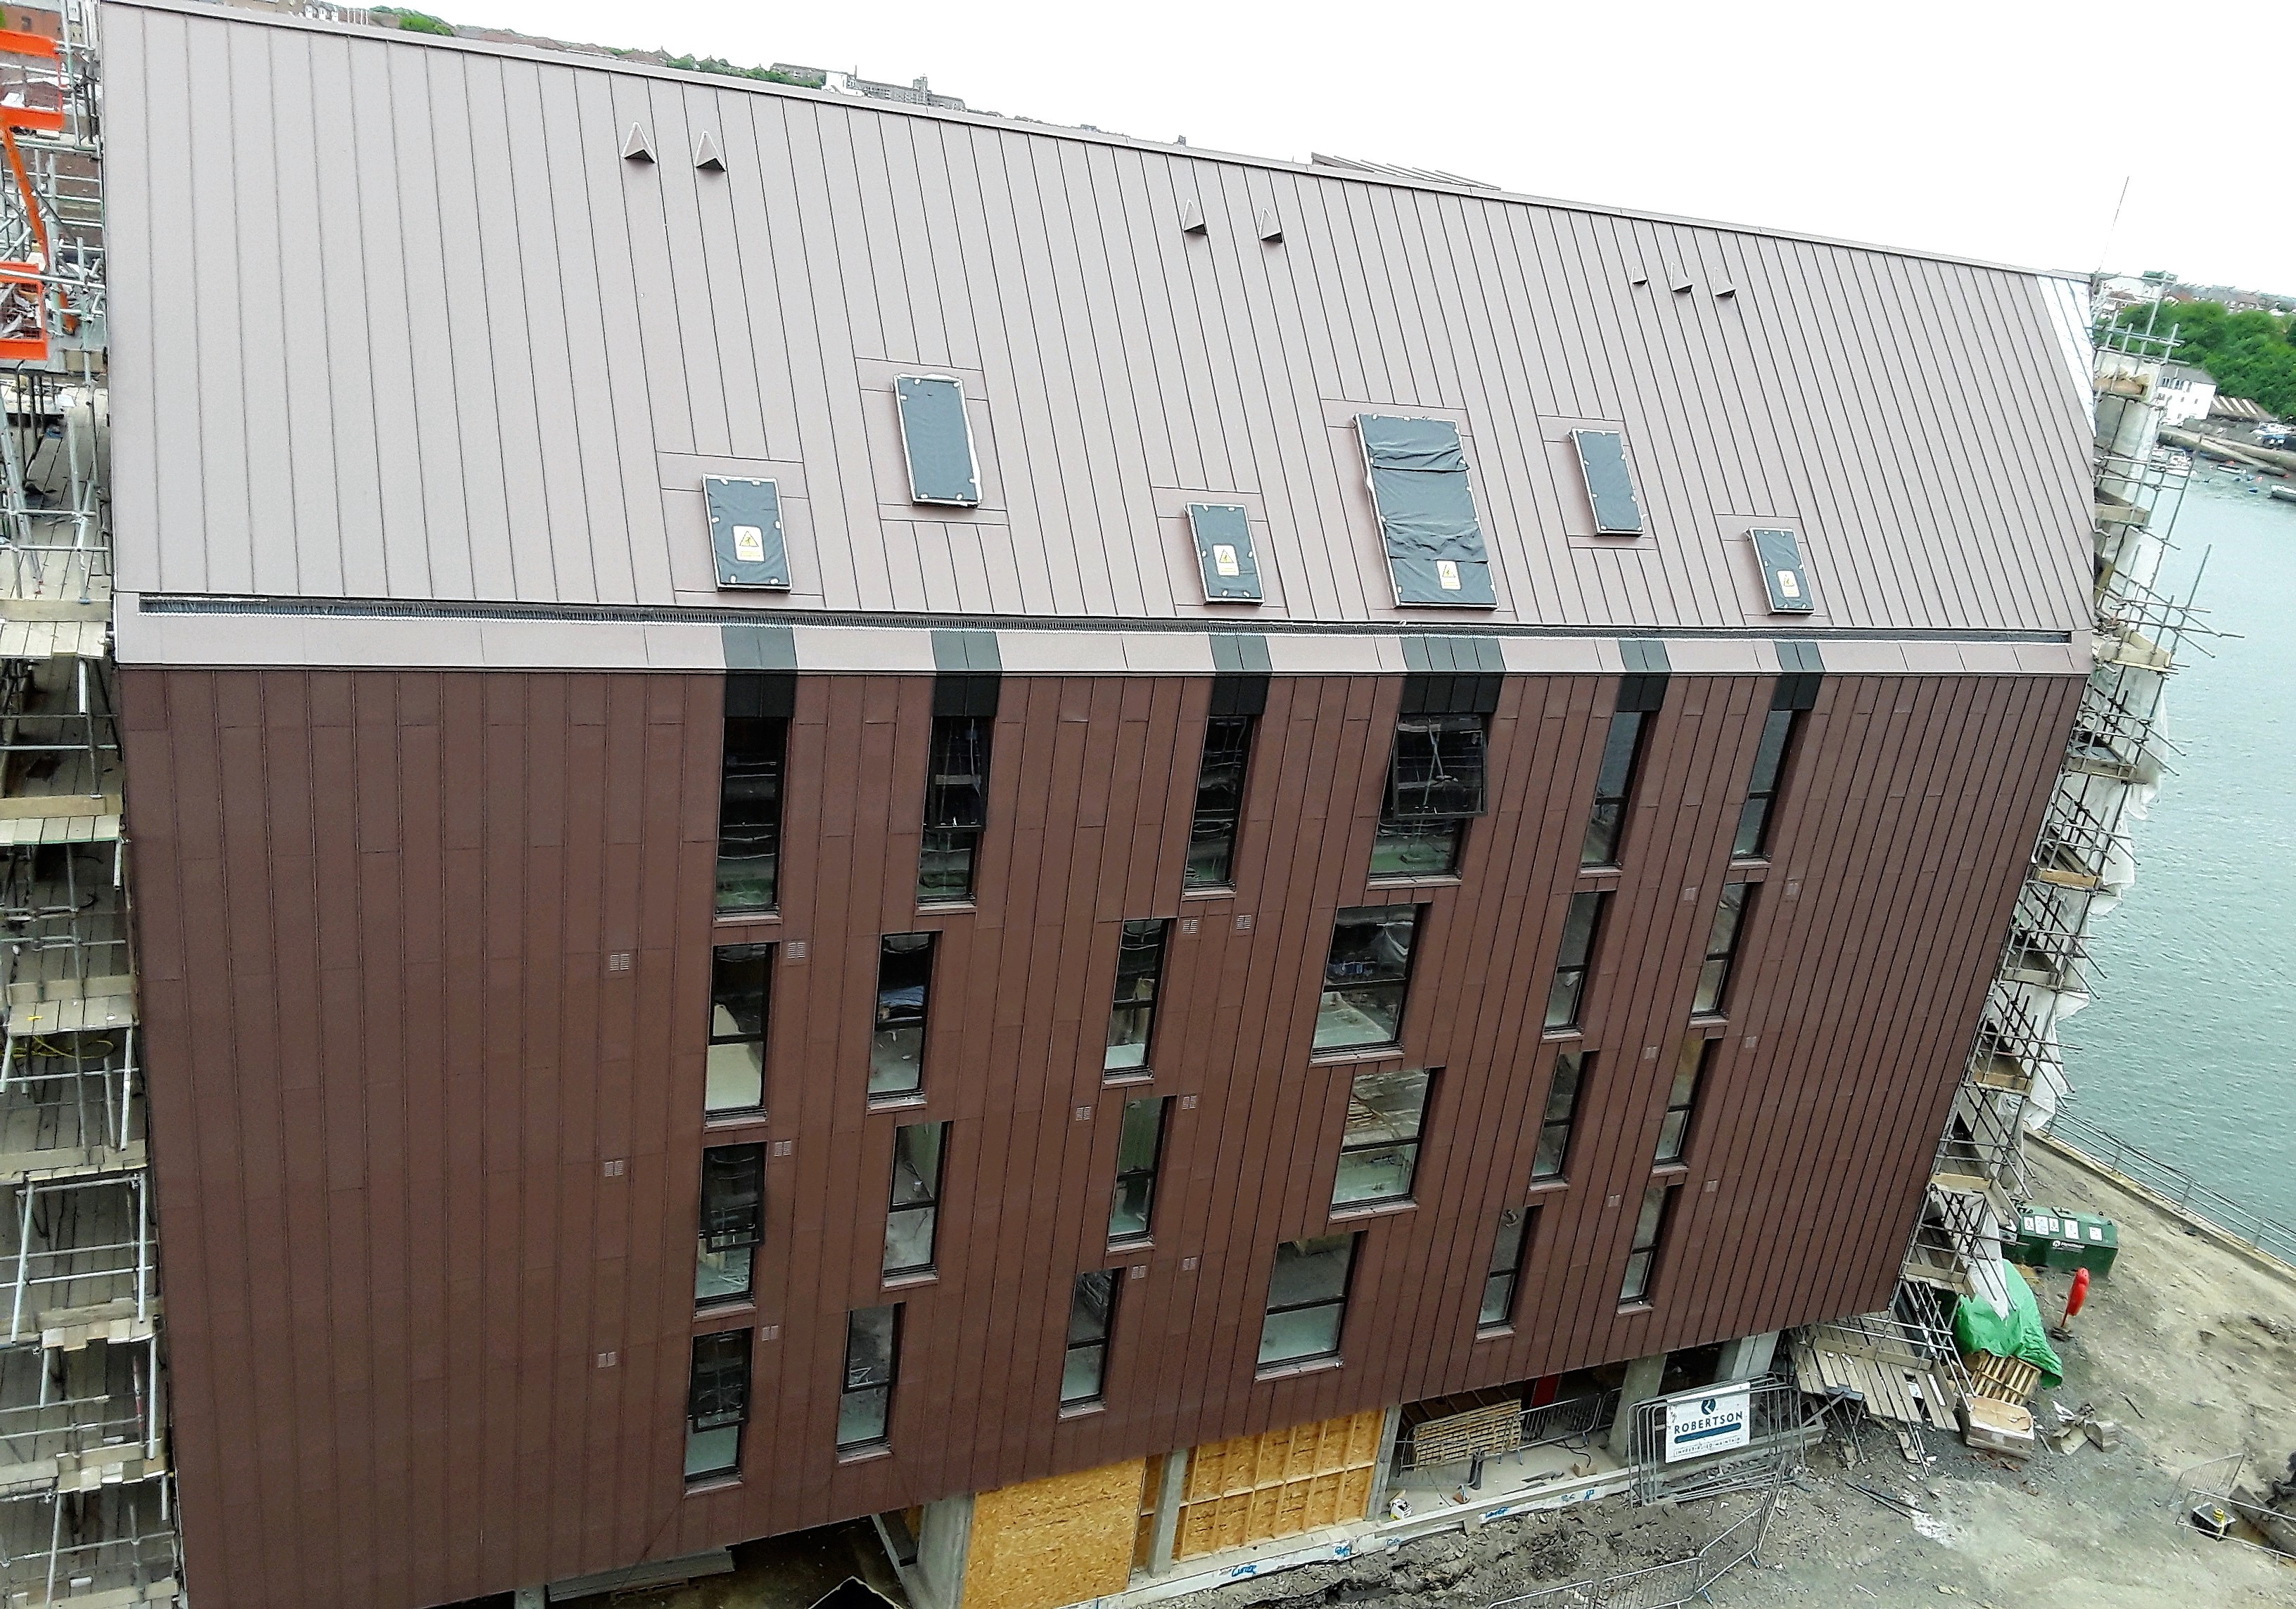 Zinc Roofing And Cladding In North Shields By Longworth